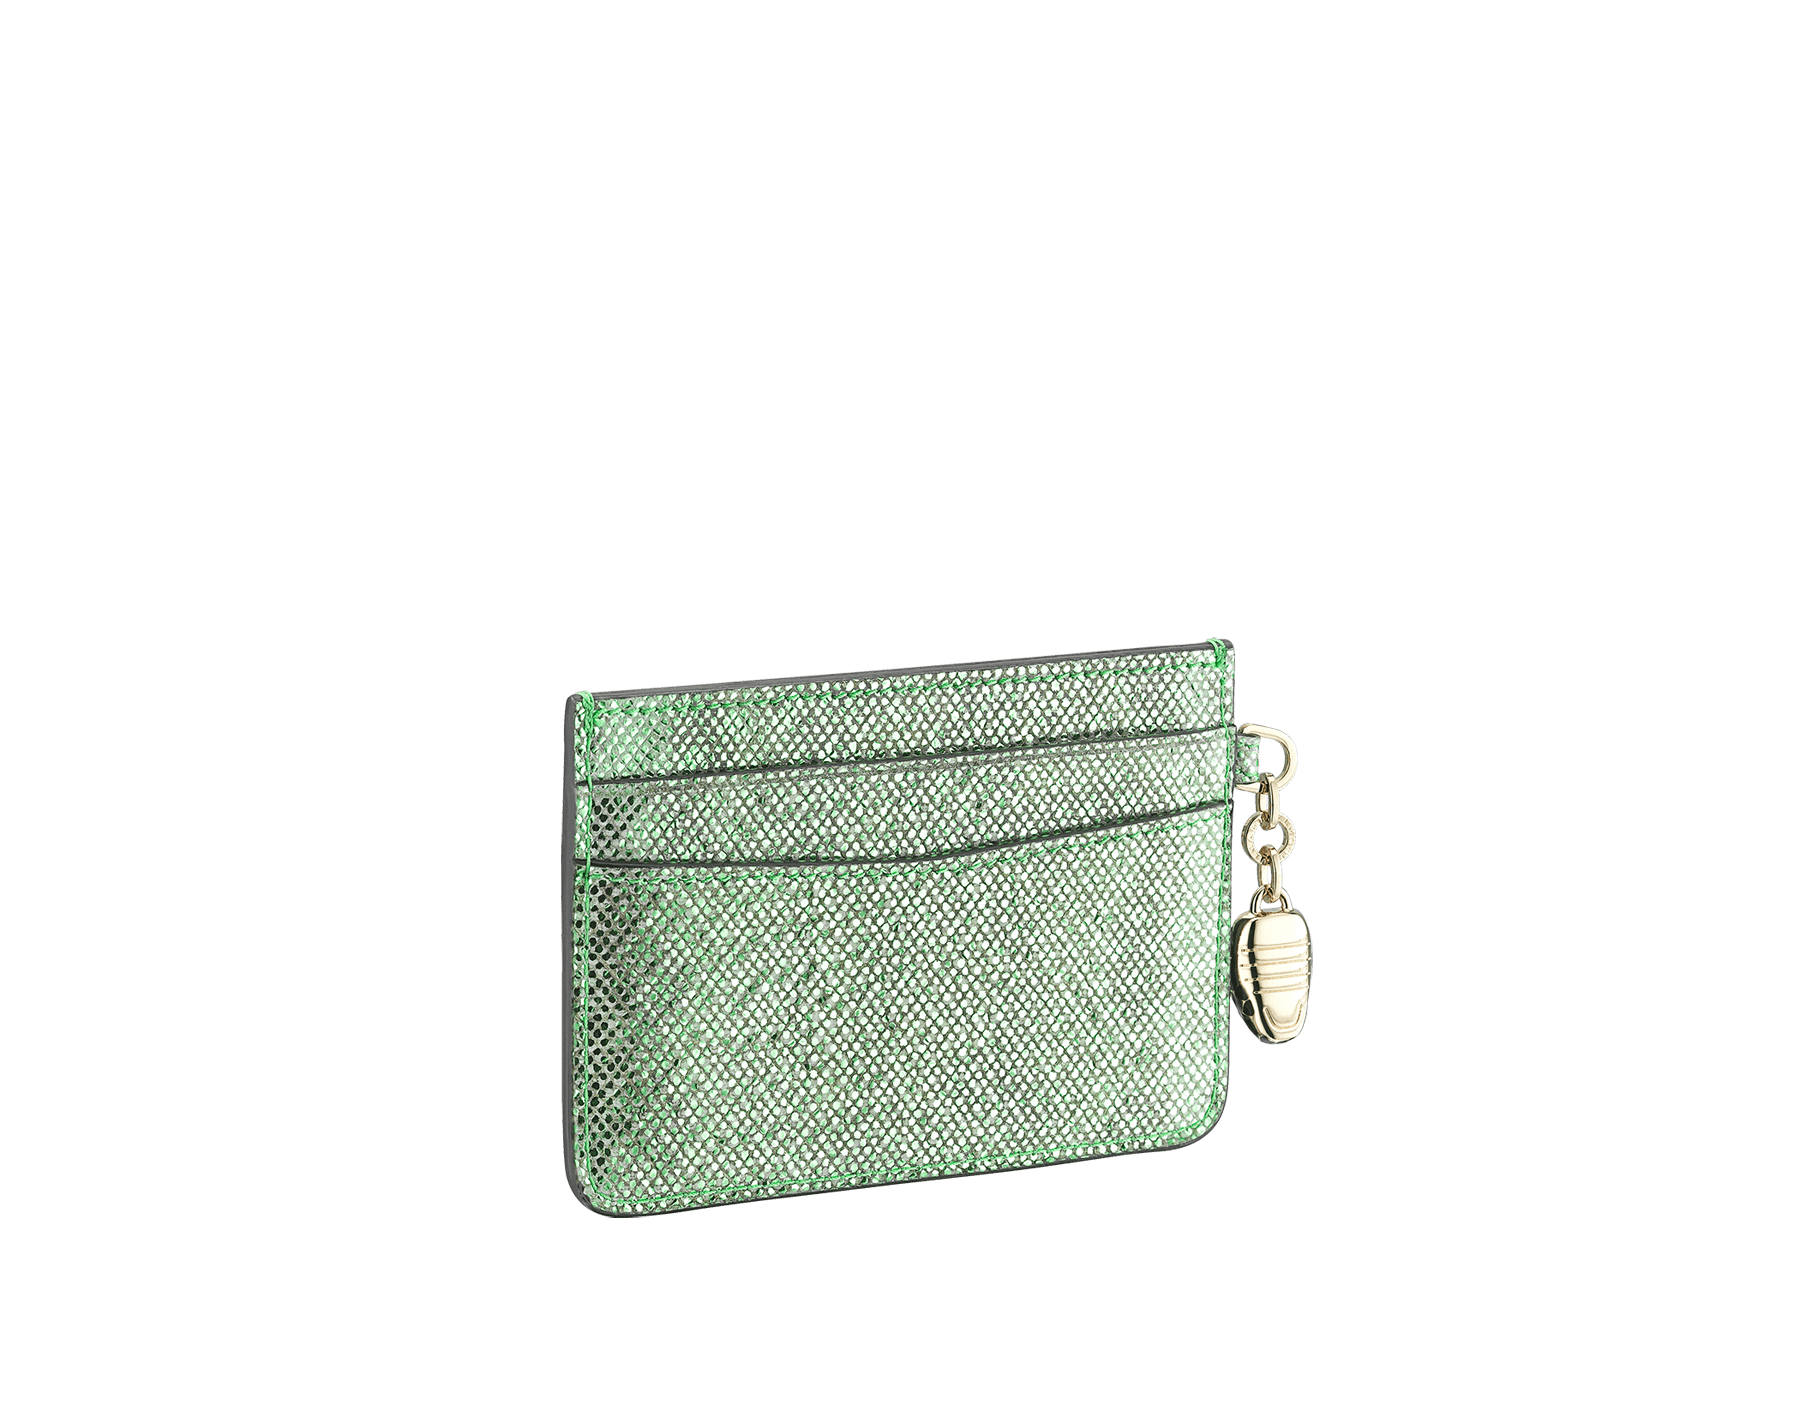 """Serpenti Forever"" card holder in mint metallic karung skin. Iconic snakehead charm in black and white agate enamel, with black enamel eyes. 290122 image 2"